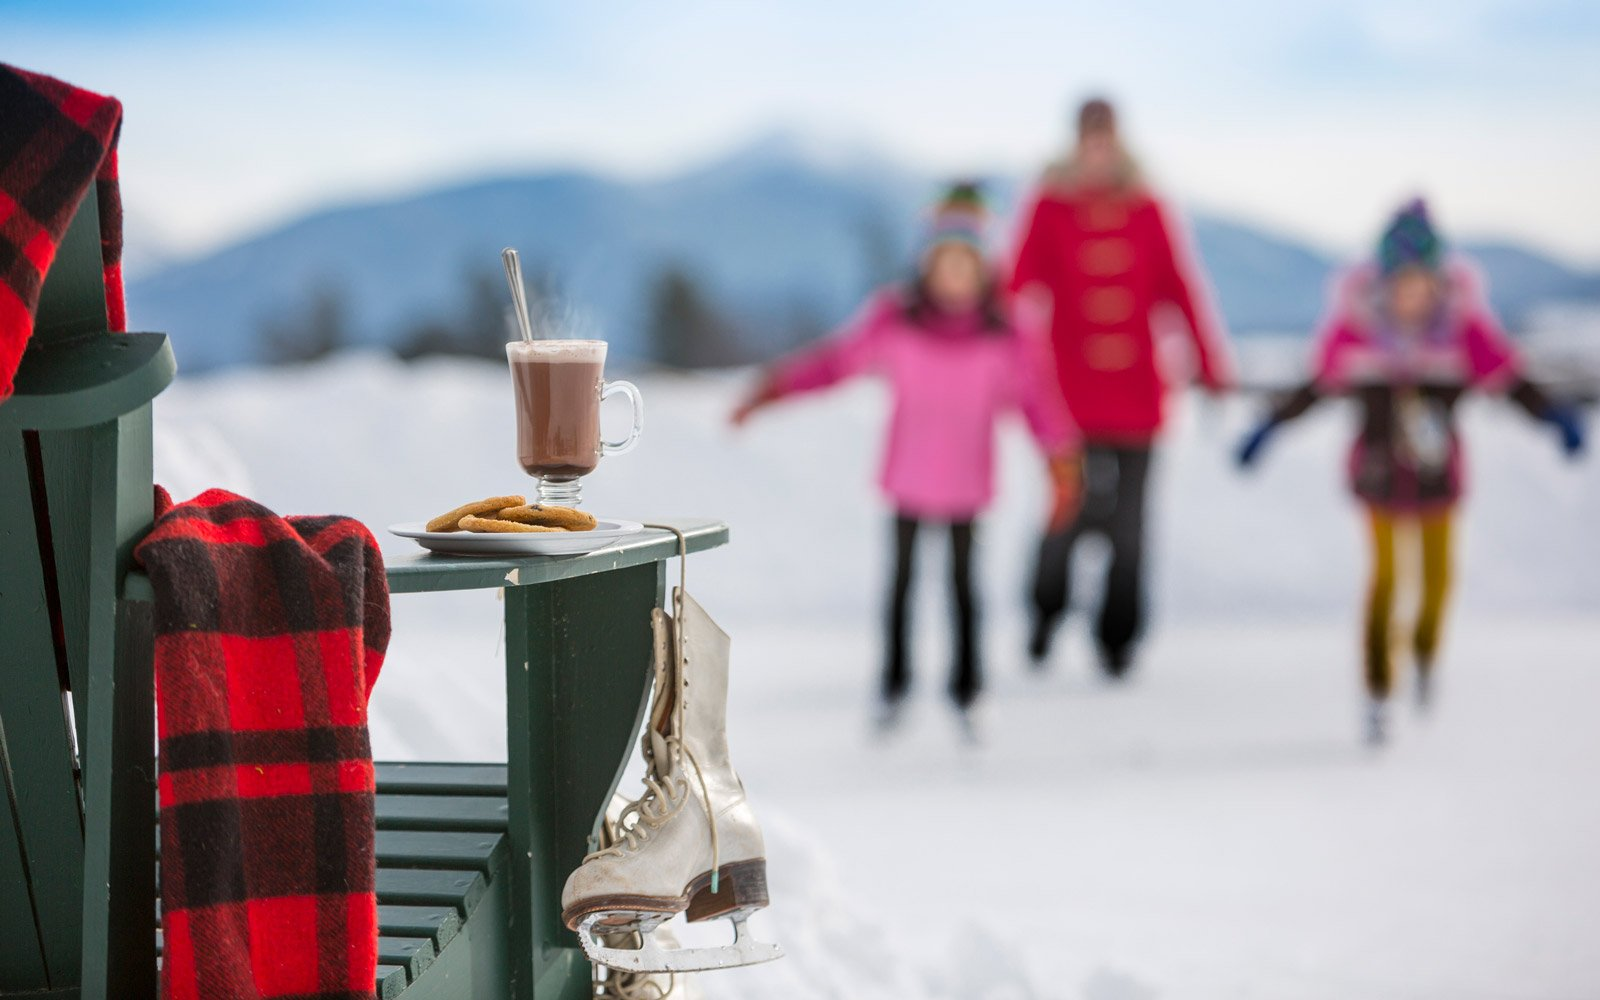 Hot chocolate on a chair and a family ice skating